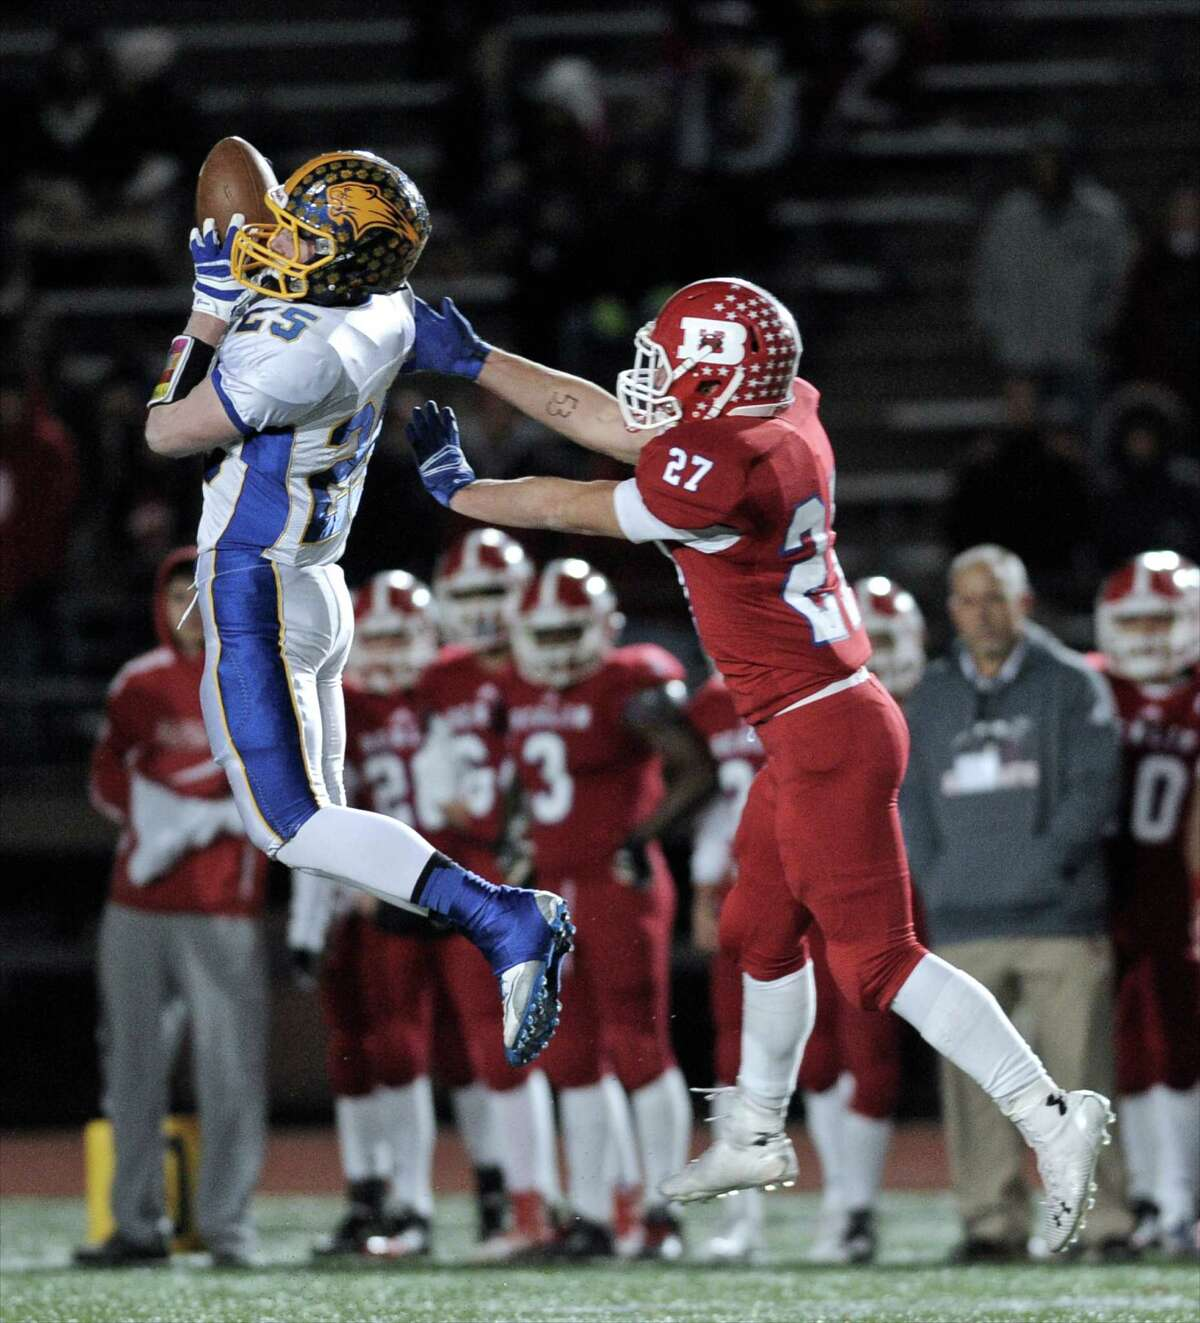 Brookfield's Gabe Pompette (25) intercepts a pass intended for Berlin's Anthony Sisti (27), Pompette took the ball in for a touchdown, during the Connecticut state high school Class M-Large football championship game between Berlin and Brookfield high schools played at Veterans Memorial Stadium, in New Britain, Conn, on Friday night, December 12, 2014. Brookfield won the state championship 14-0.